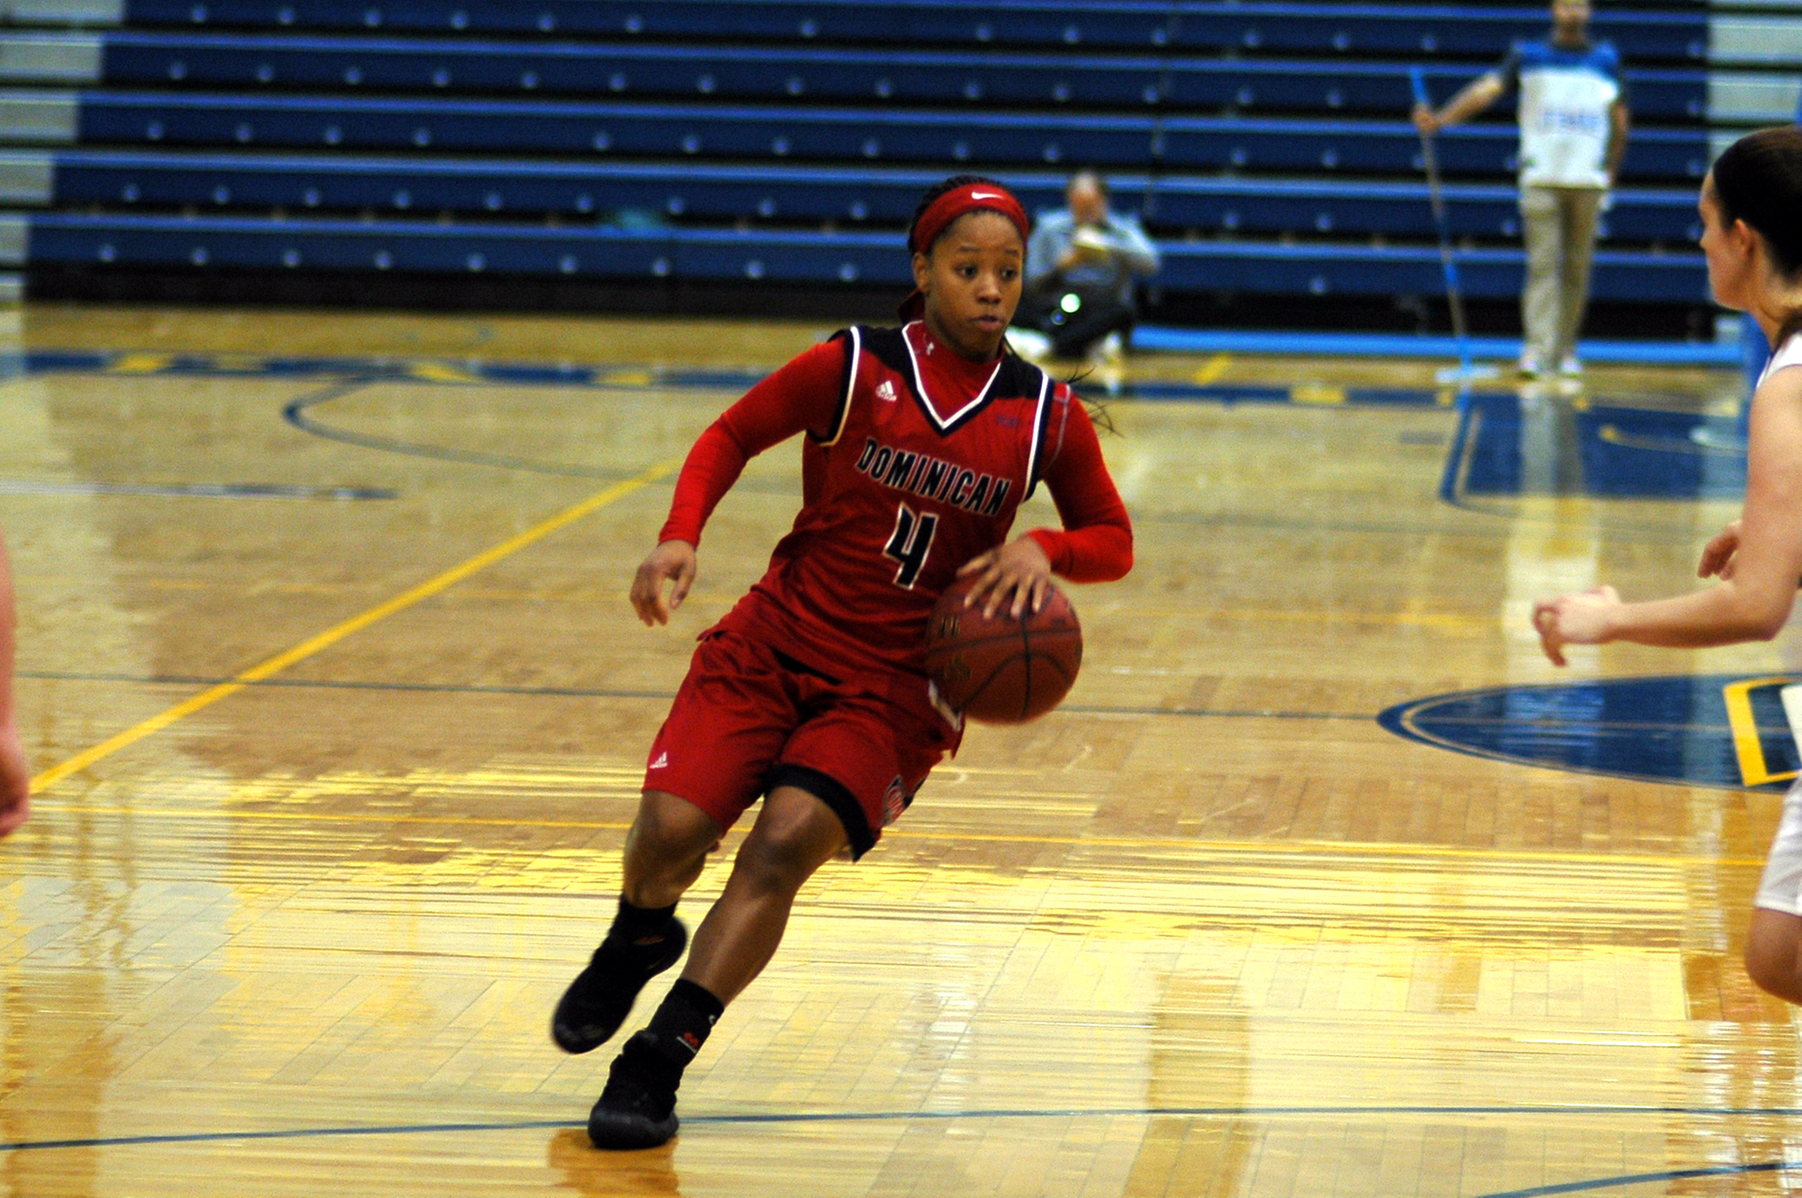 Freshman Kyla Ramseur who netted a career high 13 points tonight